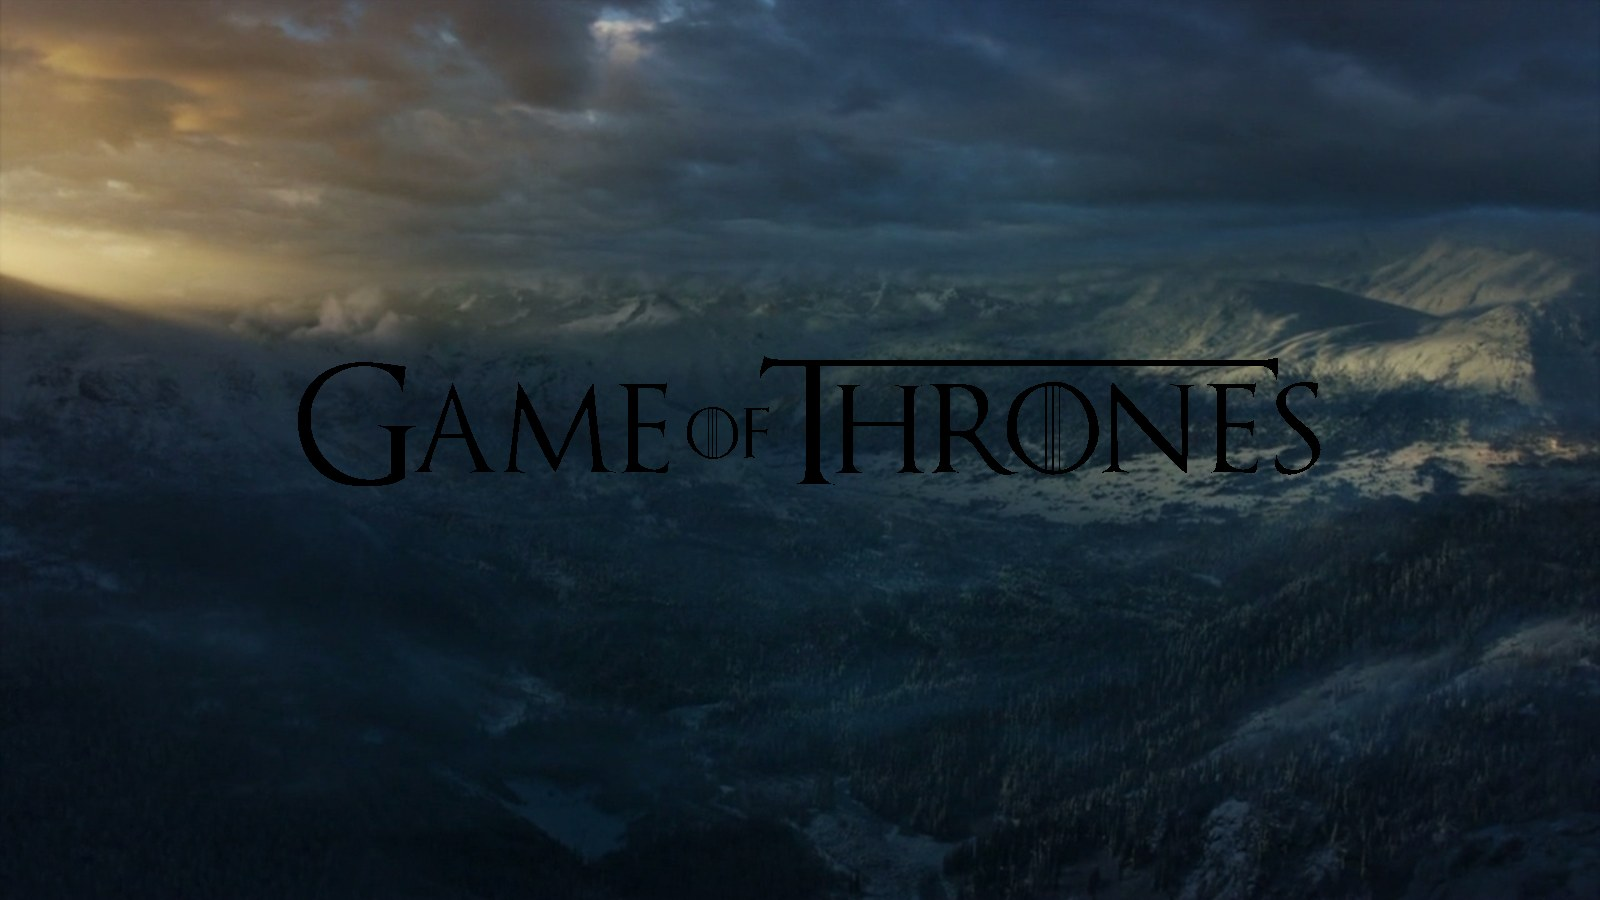 Game Of Thrones Background Wallpaper wallpapers55com   Best 1600x900